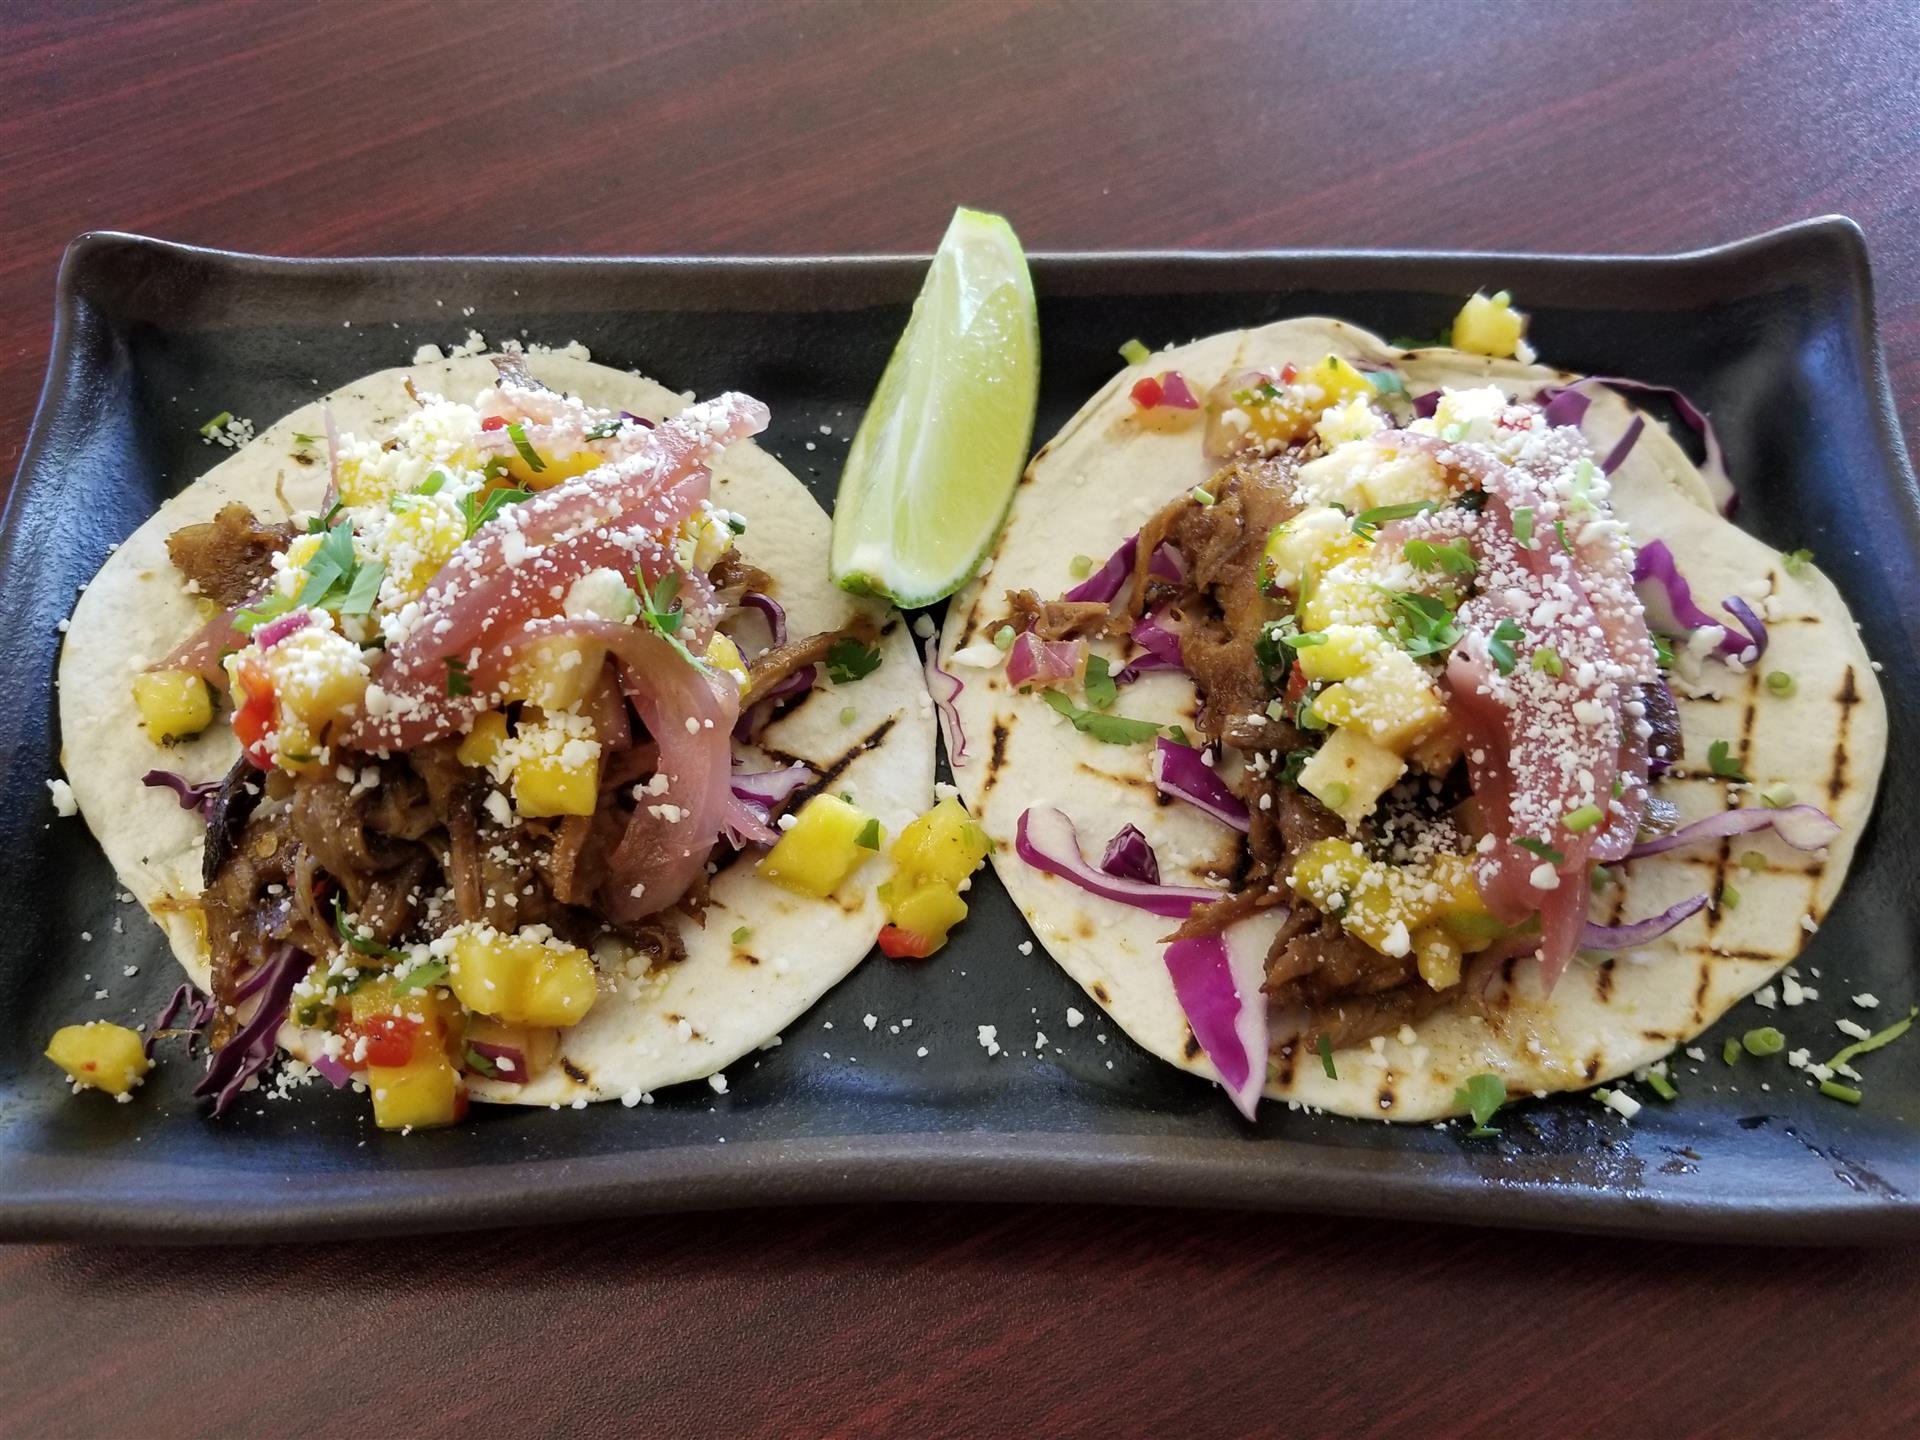 plate with 2 tacos with meat and pineapple salsa, garnished with a lime